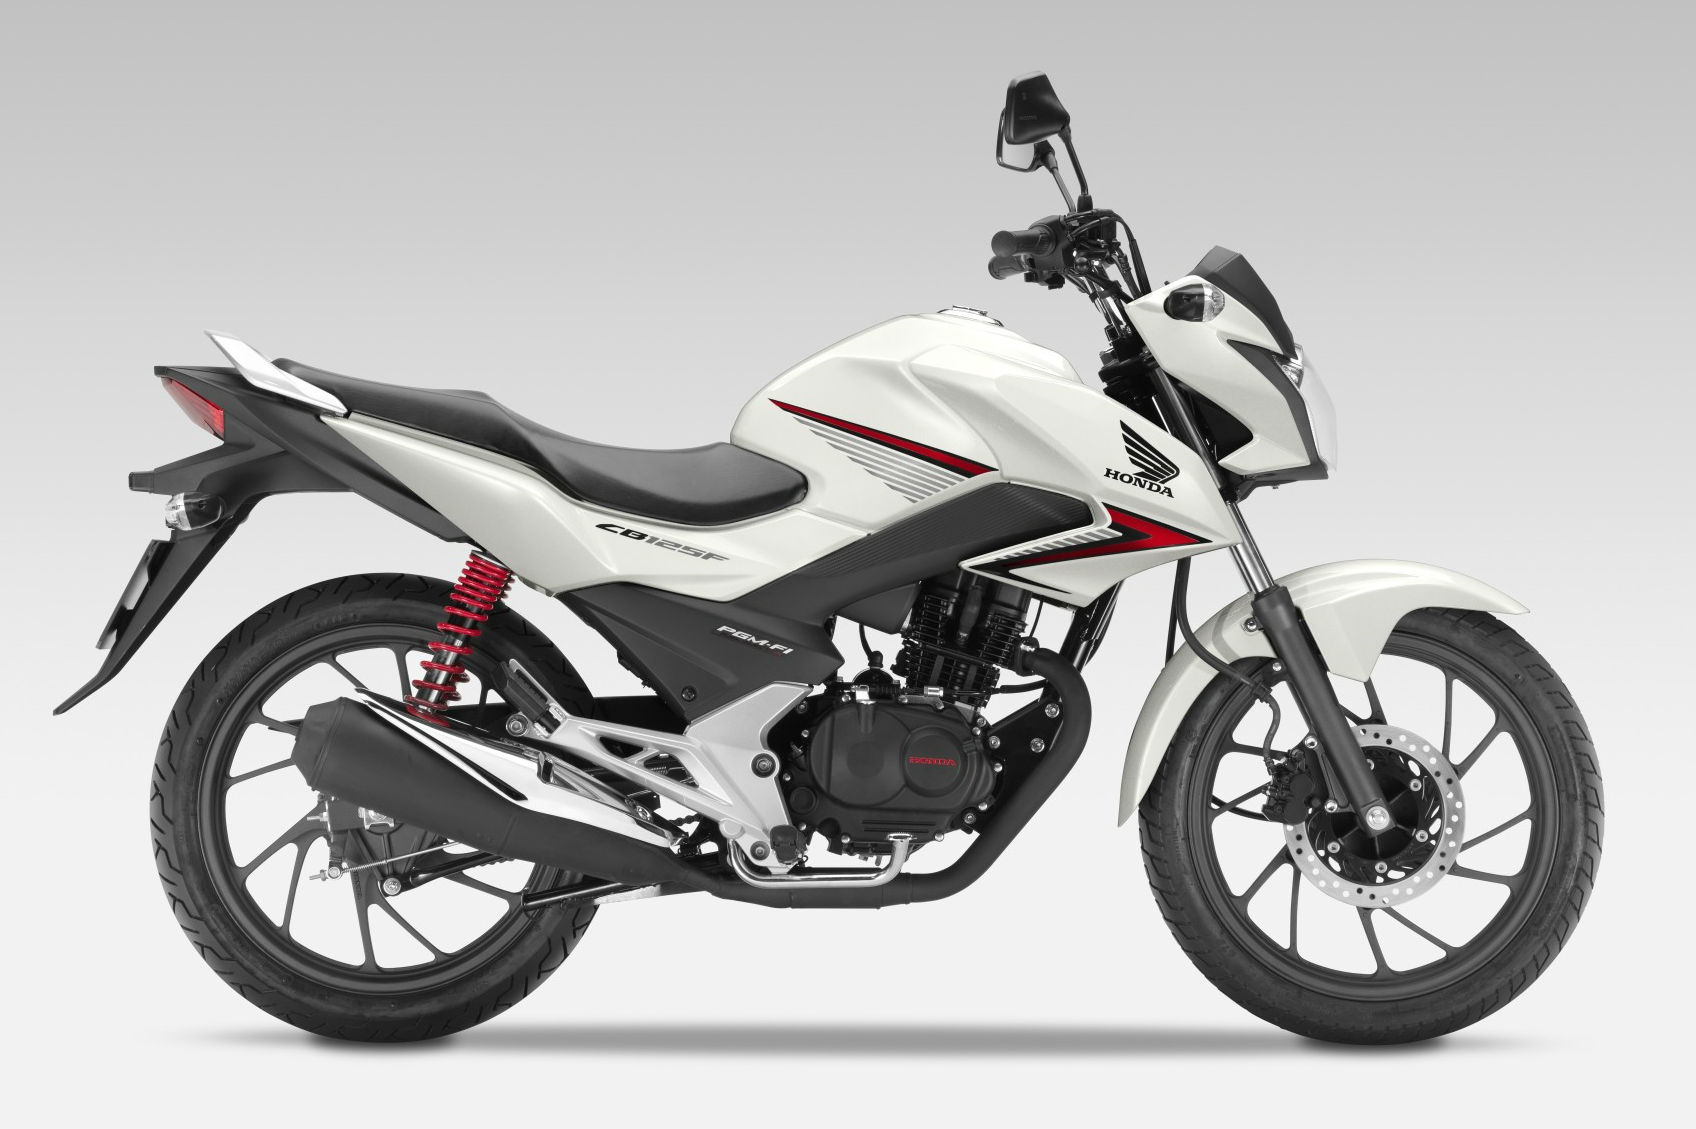 First ride: Honda CB125F review